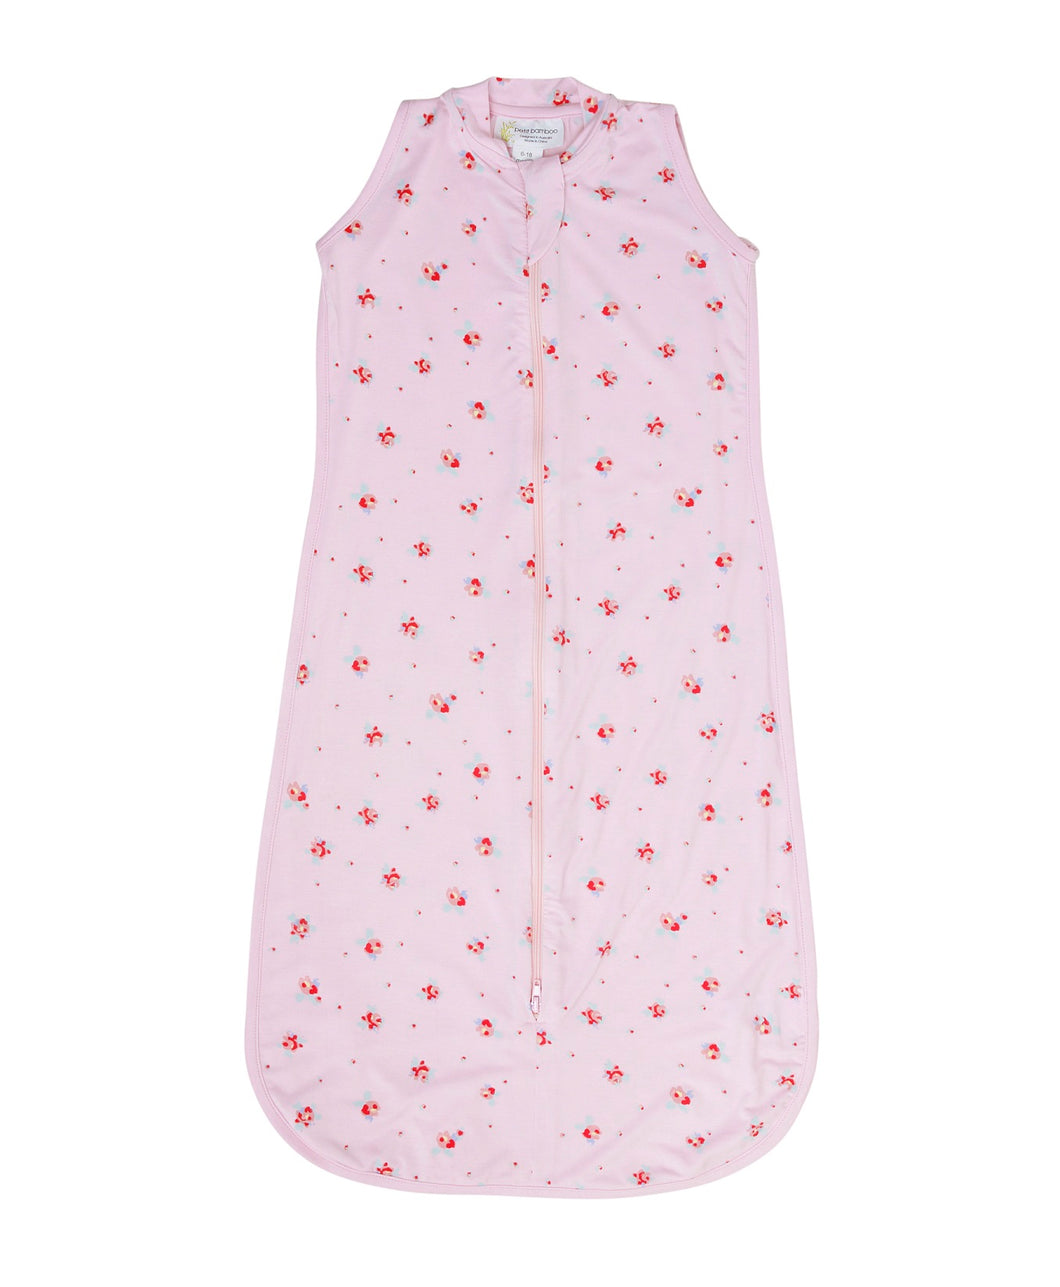 Bamboo Sleeping Bag 6-18 Months - Pink Floral